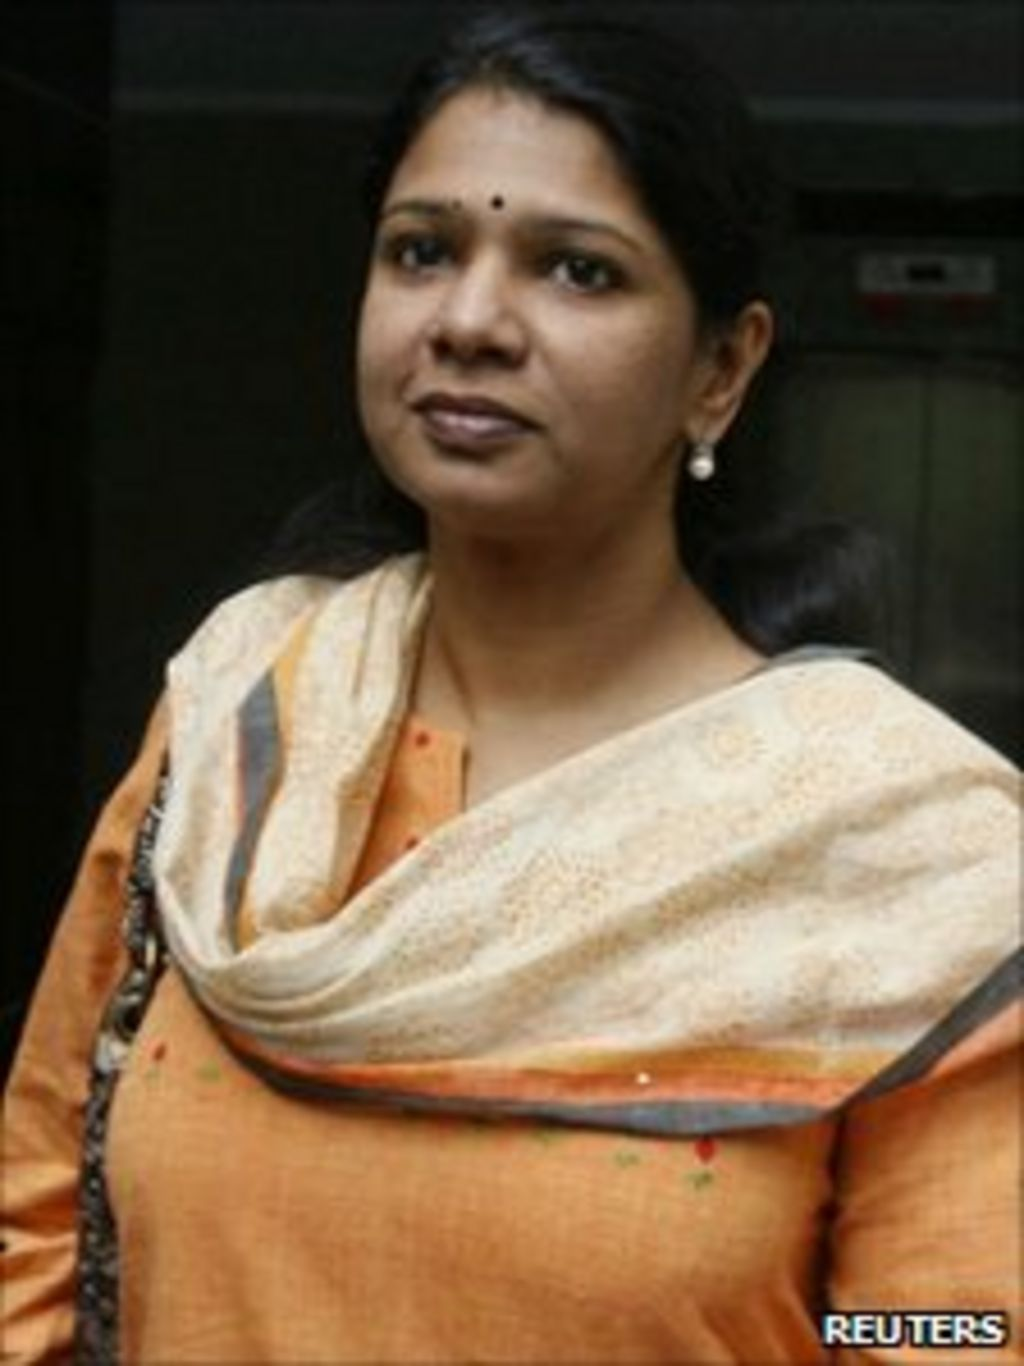 Indian Mp Kanimozhi Arrested In Telecoms Scandal - Bbc News-4033